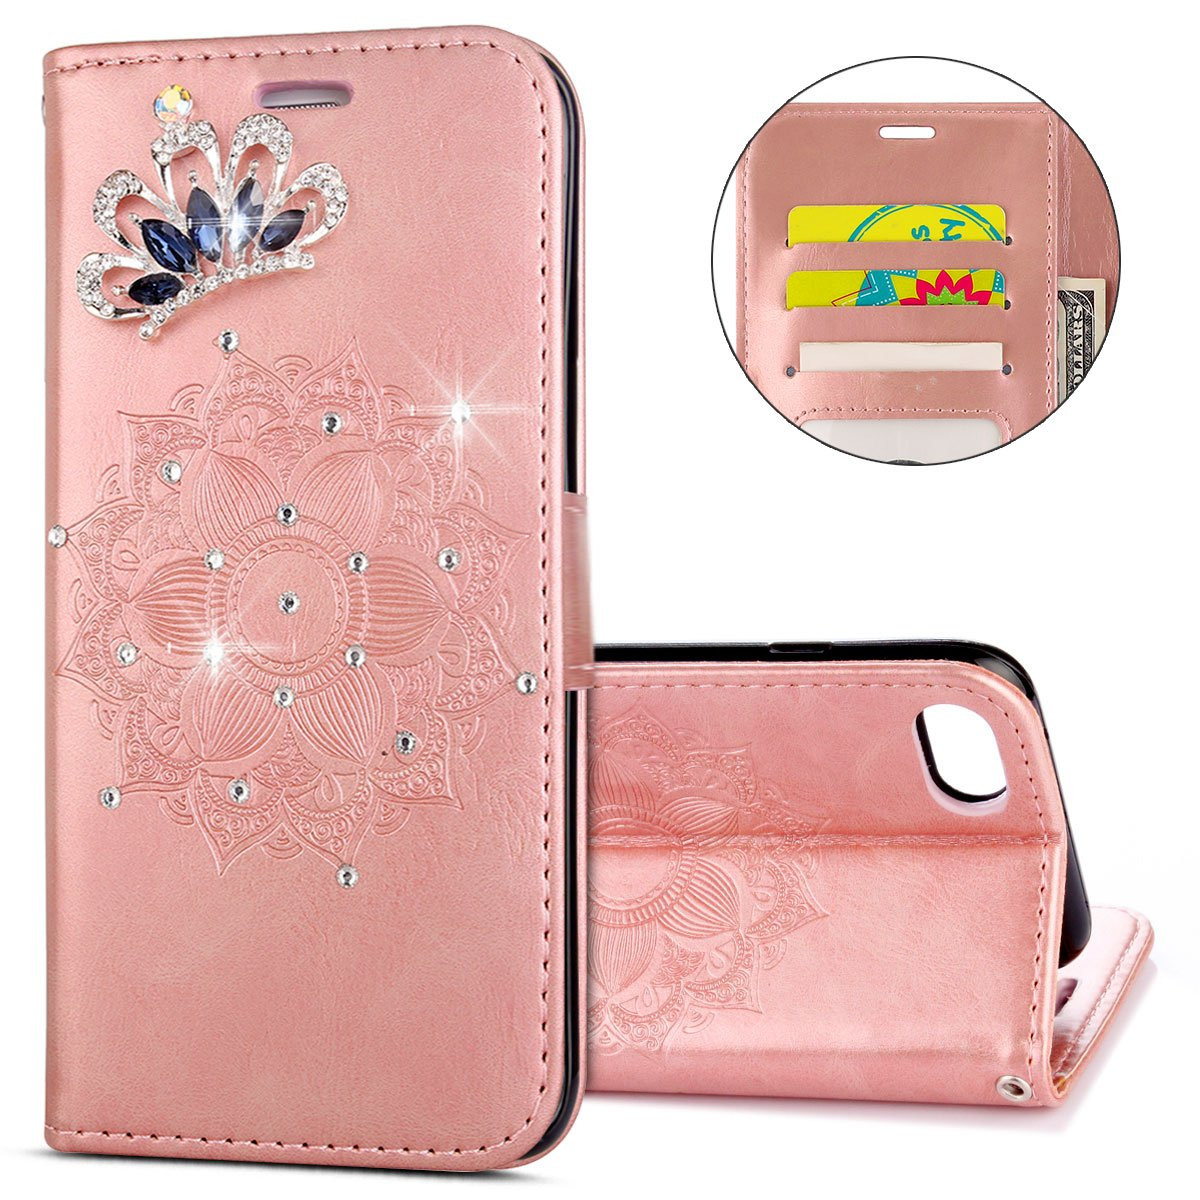 IKASEFU iPhone 7,iPhone 8 Case,Clear Crown Rhinestone Diamond Bling Glitter Wallet with Card Holder Emboss Mandala Floral Pu Leather Magnetic Flip Case Protective Cover for iPhone 7/8,Rosa Gold